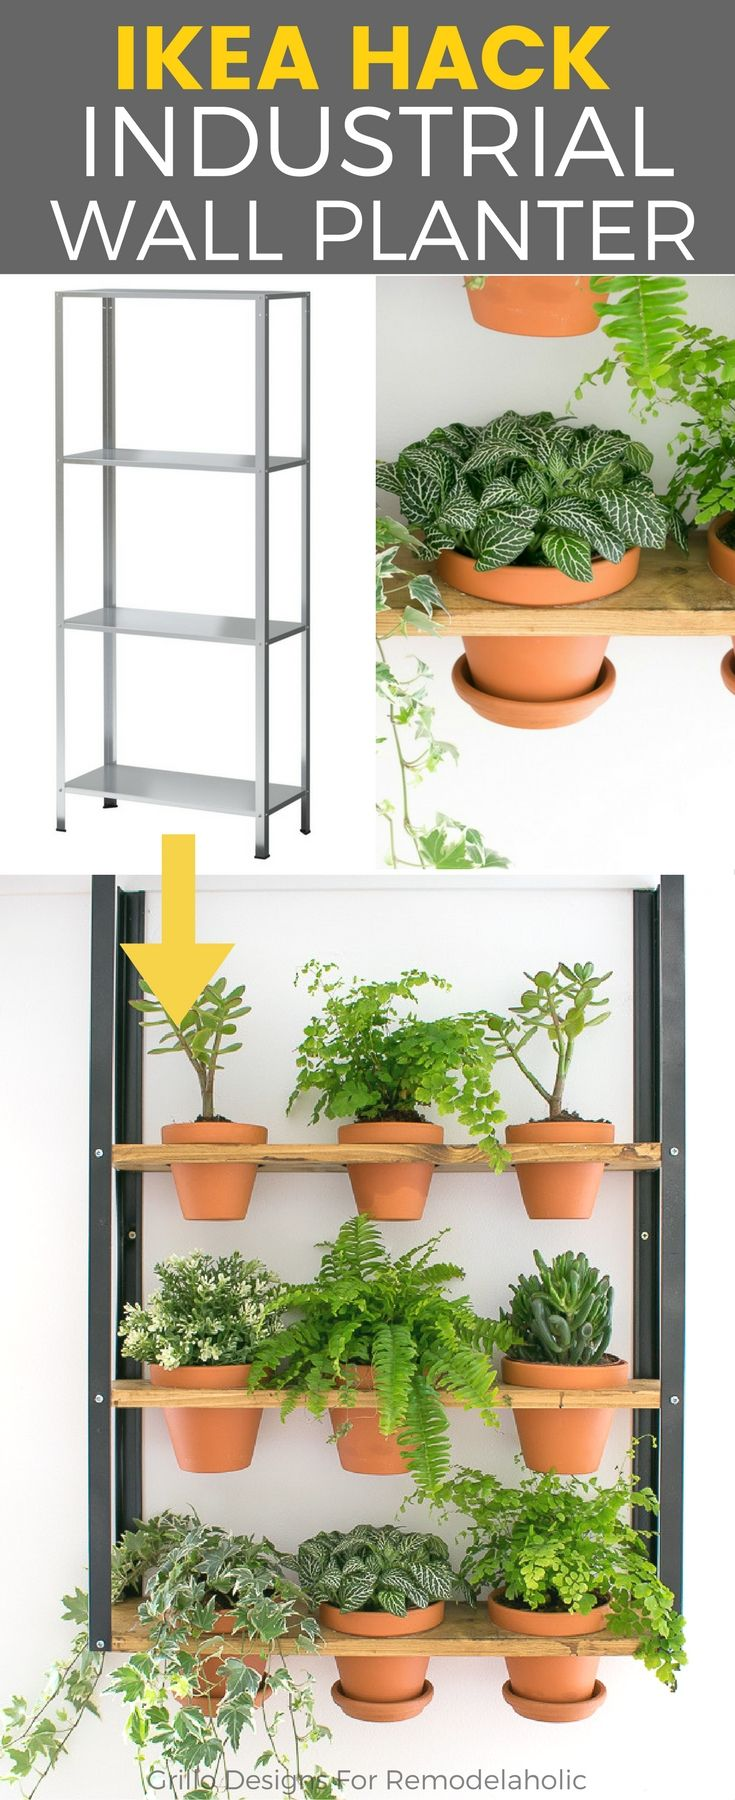 Hyllis ikea hack industrial wall planter en 2018 for Ikea plantes